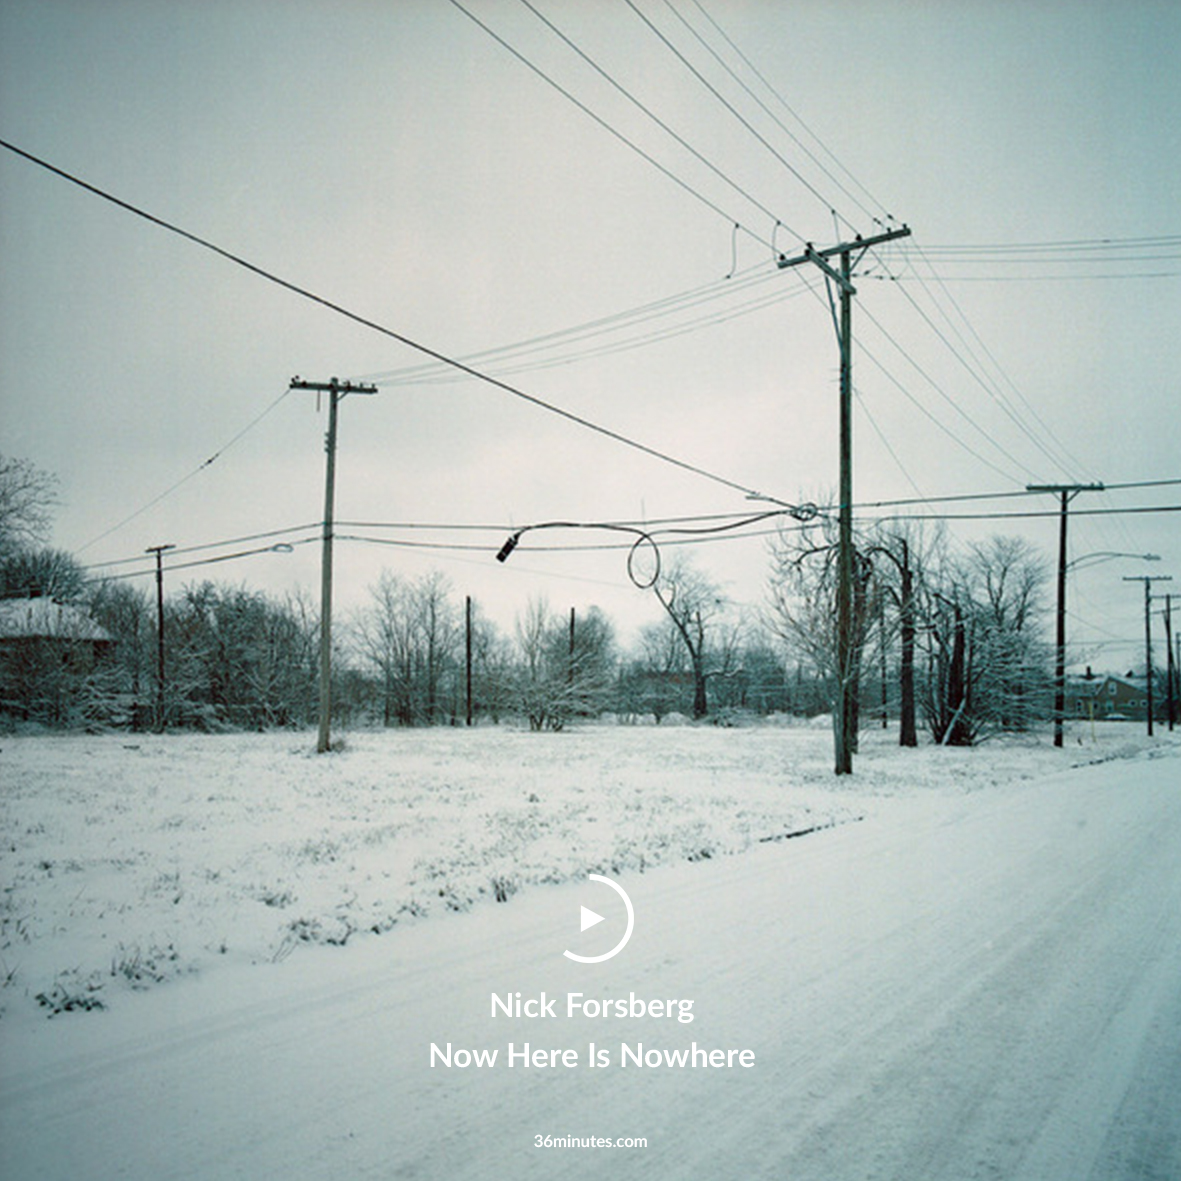 Nick Forsberg - Now Here Is Nowhere